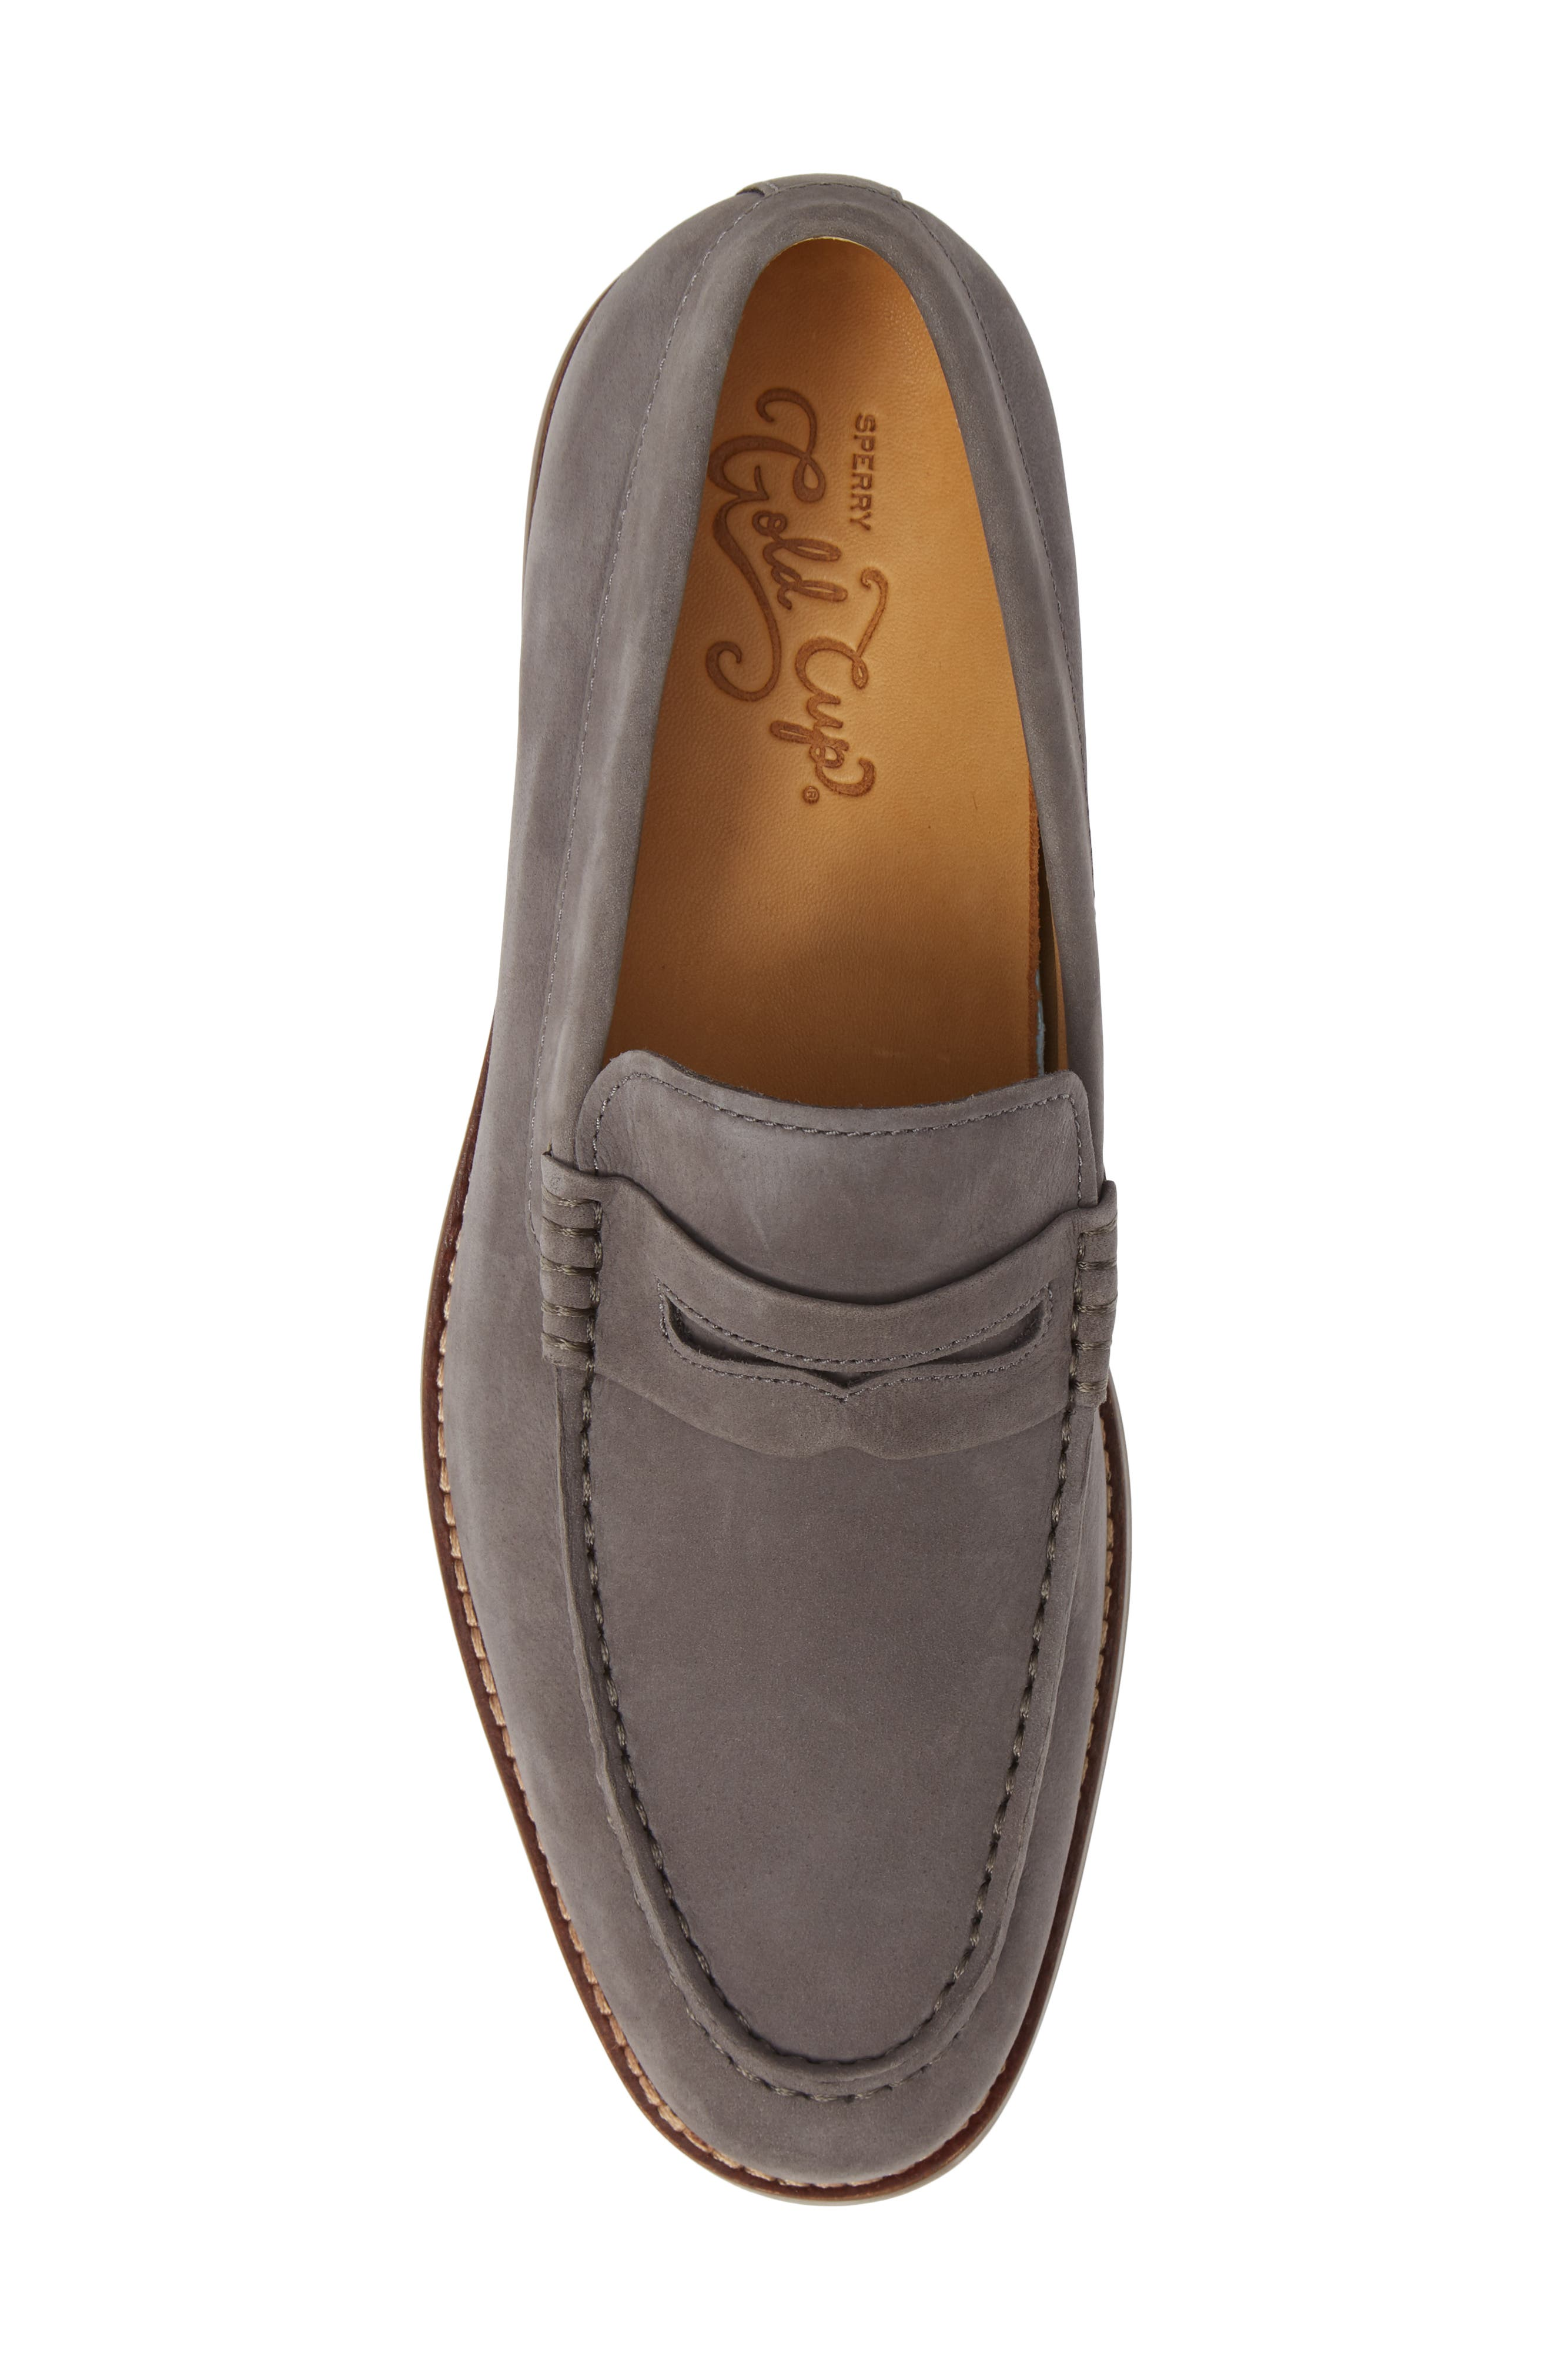 Gold Cup Exeter Penny Loafer,                             Alternate thumbnail 5, color,                             GREY